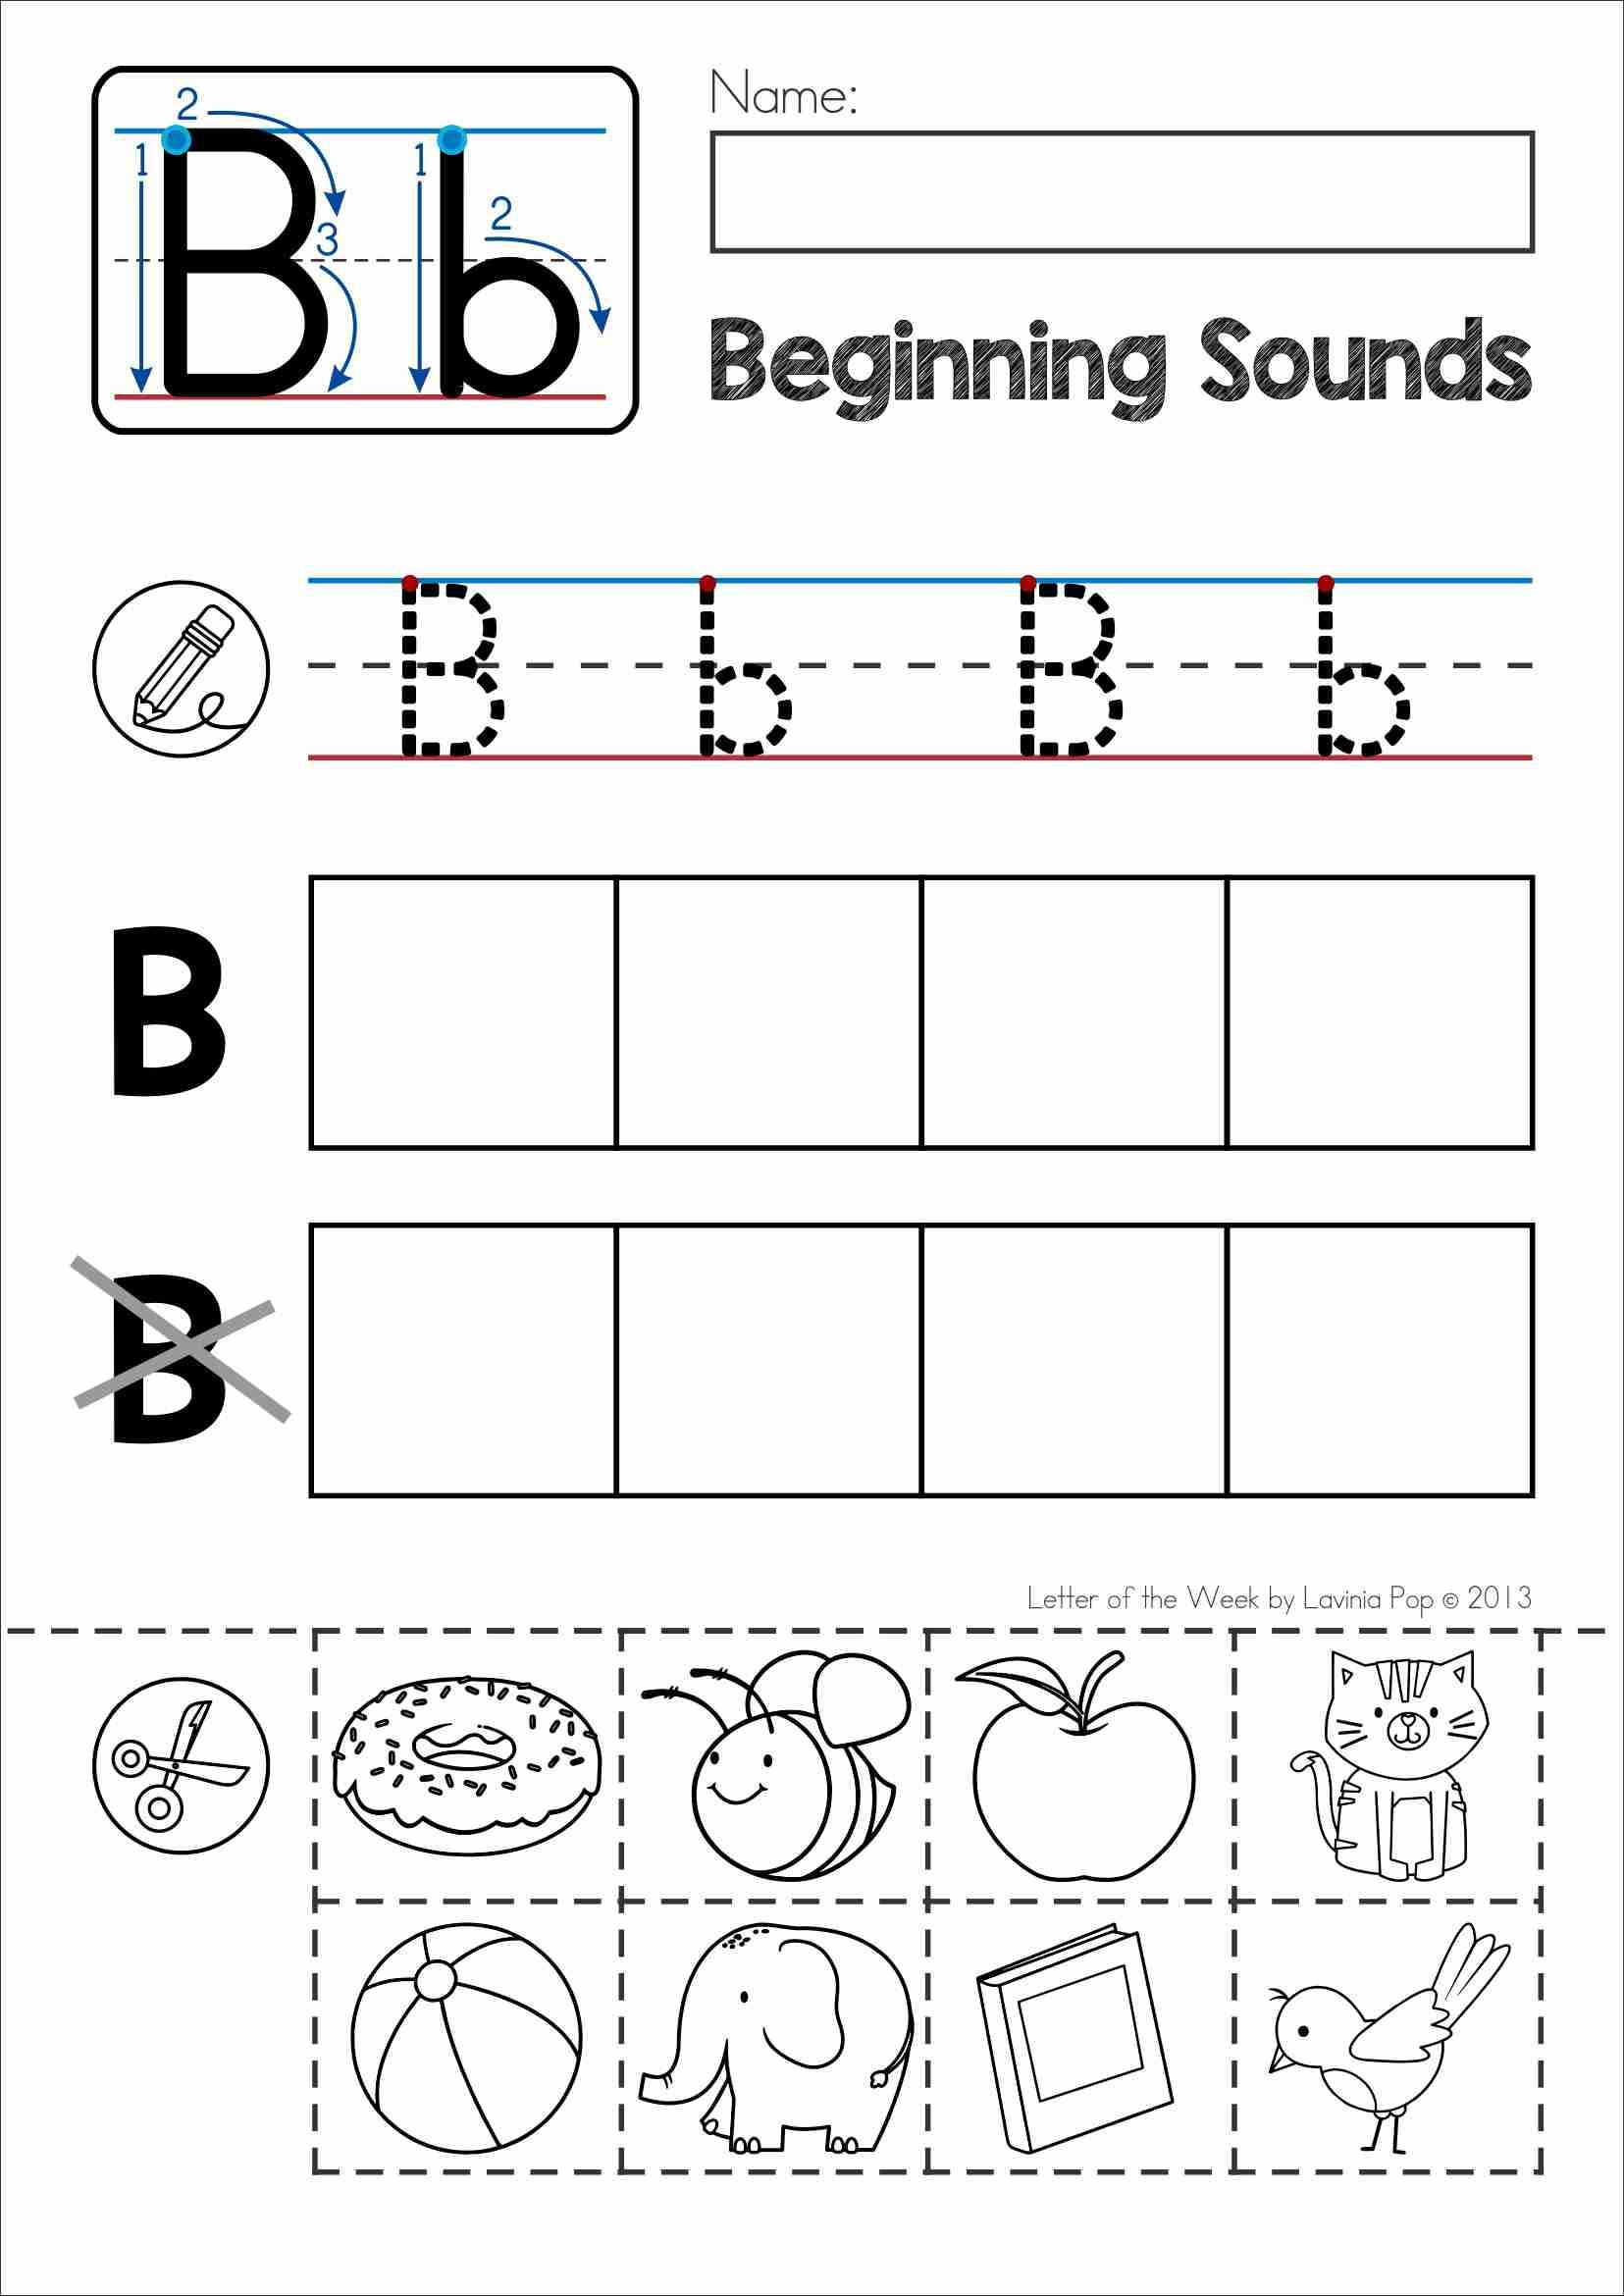 worksheet Beginning Sounds Worksheets Cut And Paste free phonics letter of the week b beginning sounds cut and paste paste